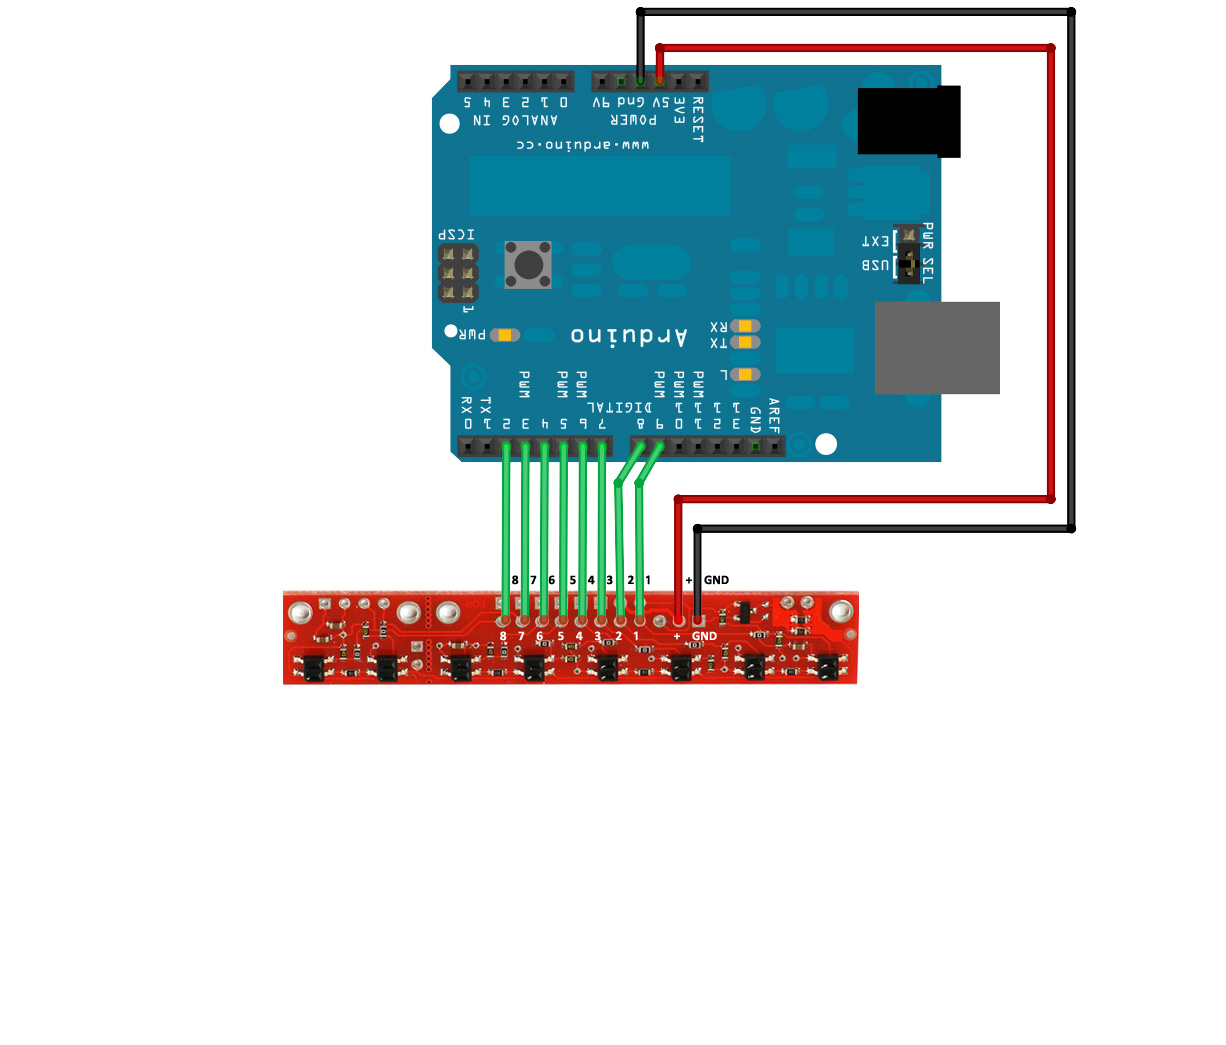 St7735s connection to arduino